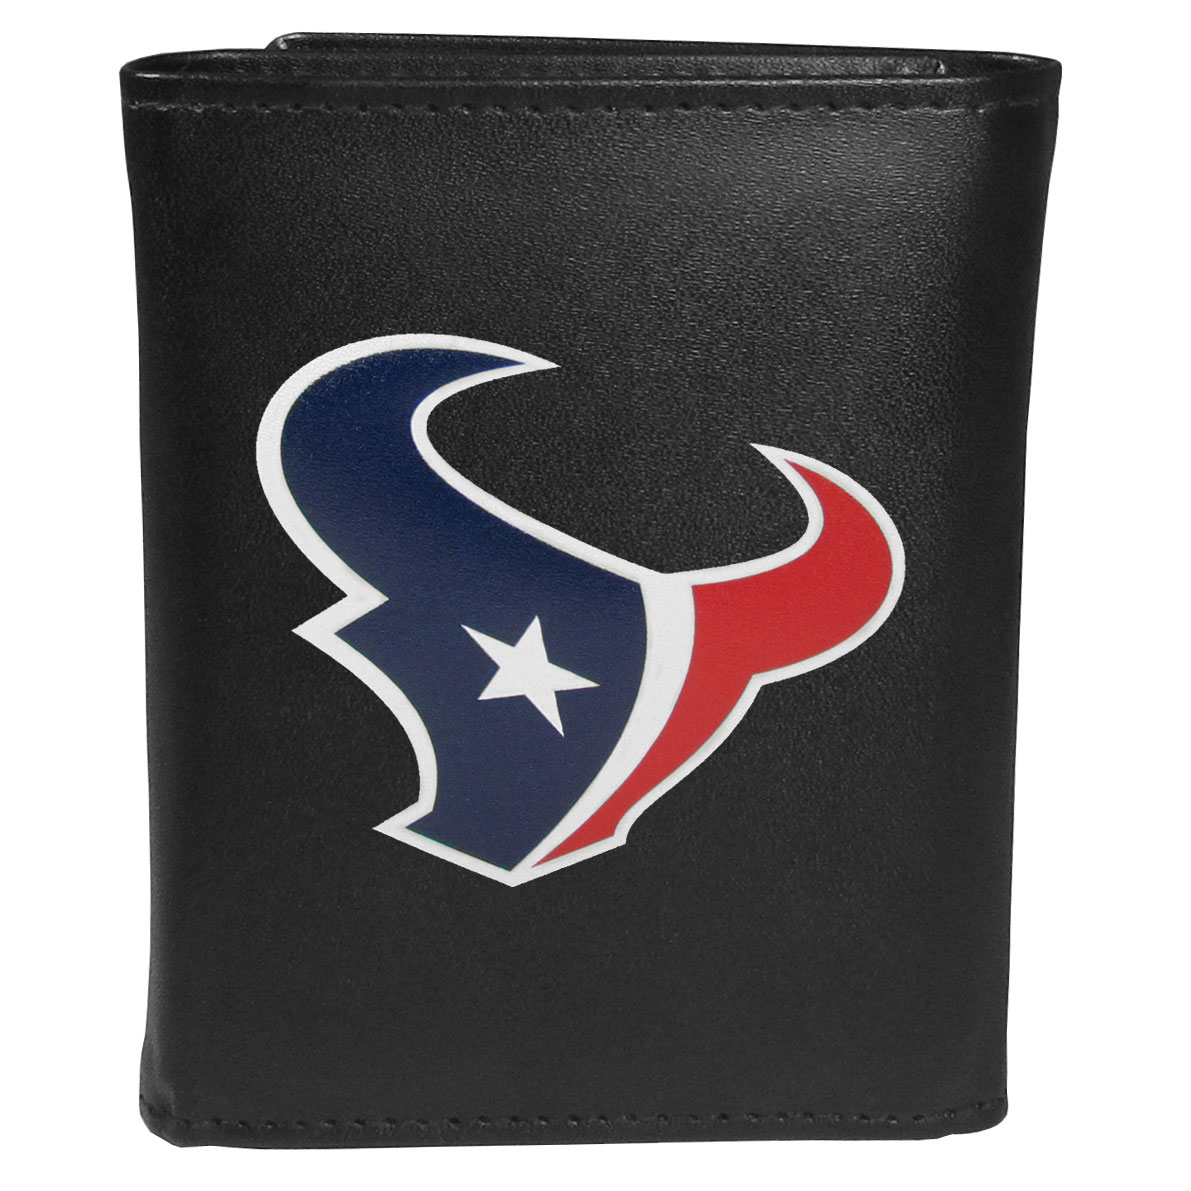 Houston Texans Leather Tri-fold Wallet, Large Logo - Our classic fine leather tri-fold wallet is meticulously crafted with genuine leather that will age beautifully so you will have a quality wallet for years to come. This is fan apparel at its finest. The wallet is packed with organizational  features; lots of credit card slots, large billfold pocket, and a window ID slot. The front of the wallet features an extra large Houston Texans printed logo.